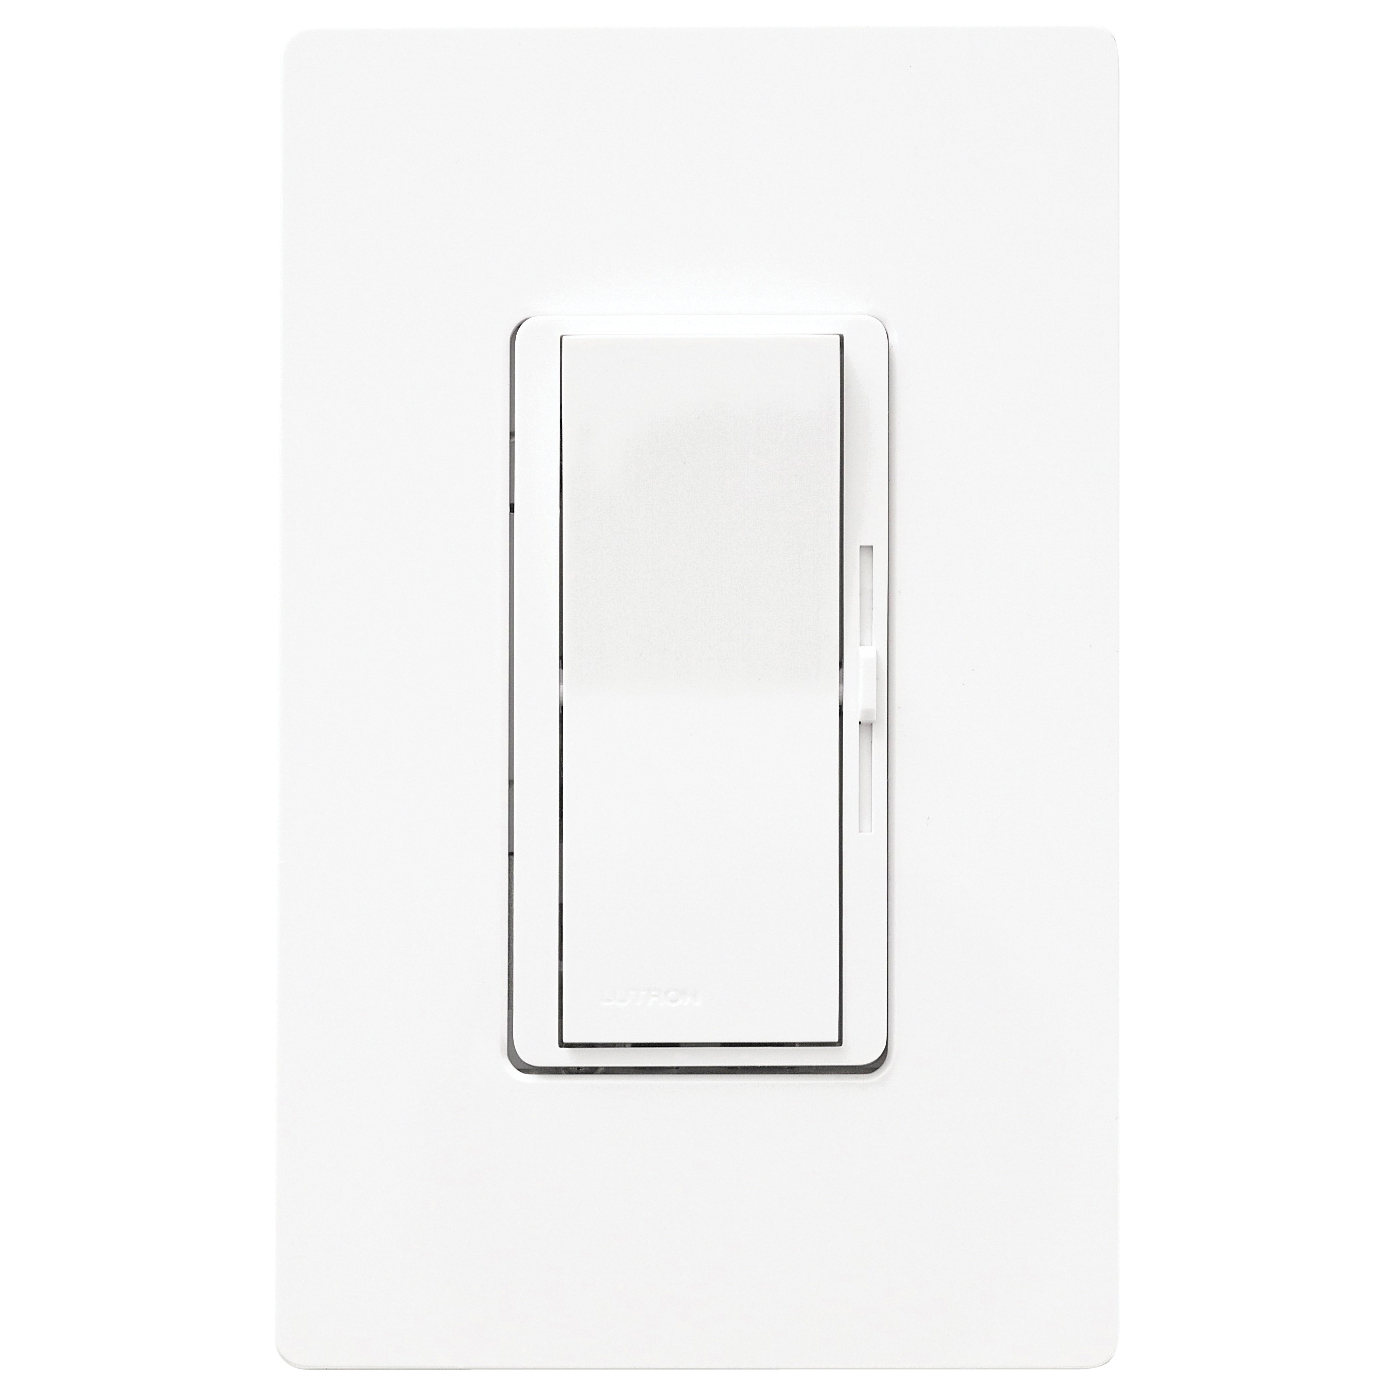 Picture of Lutron Diva DVW-600PH-WH Dimmer, 220/240 V, 600 W, Halogen, Incandescent Lamp, White